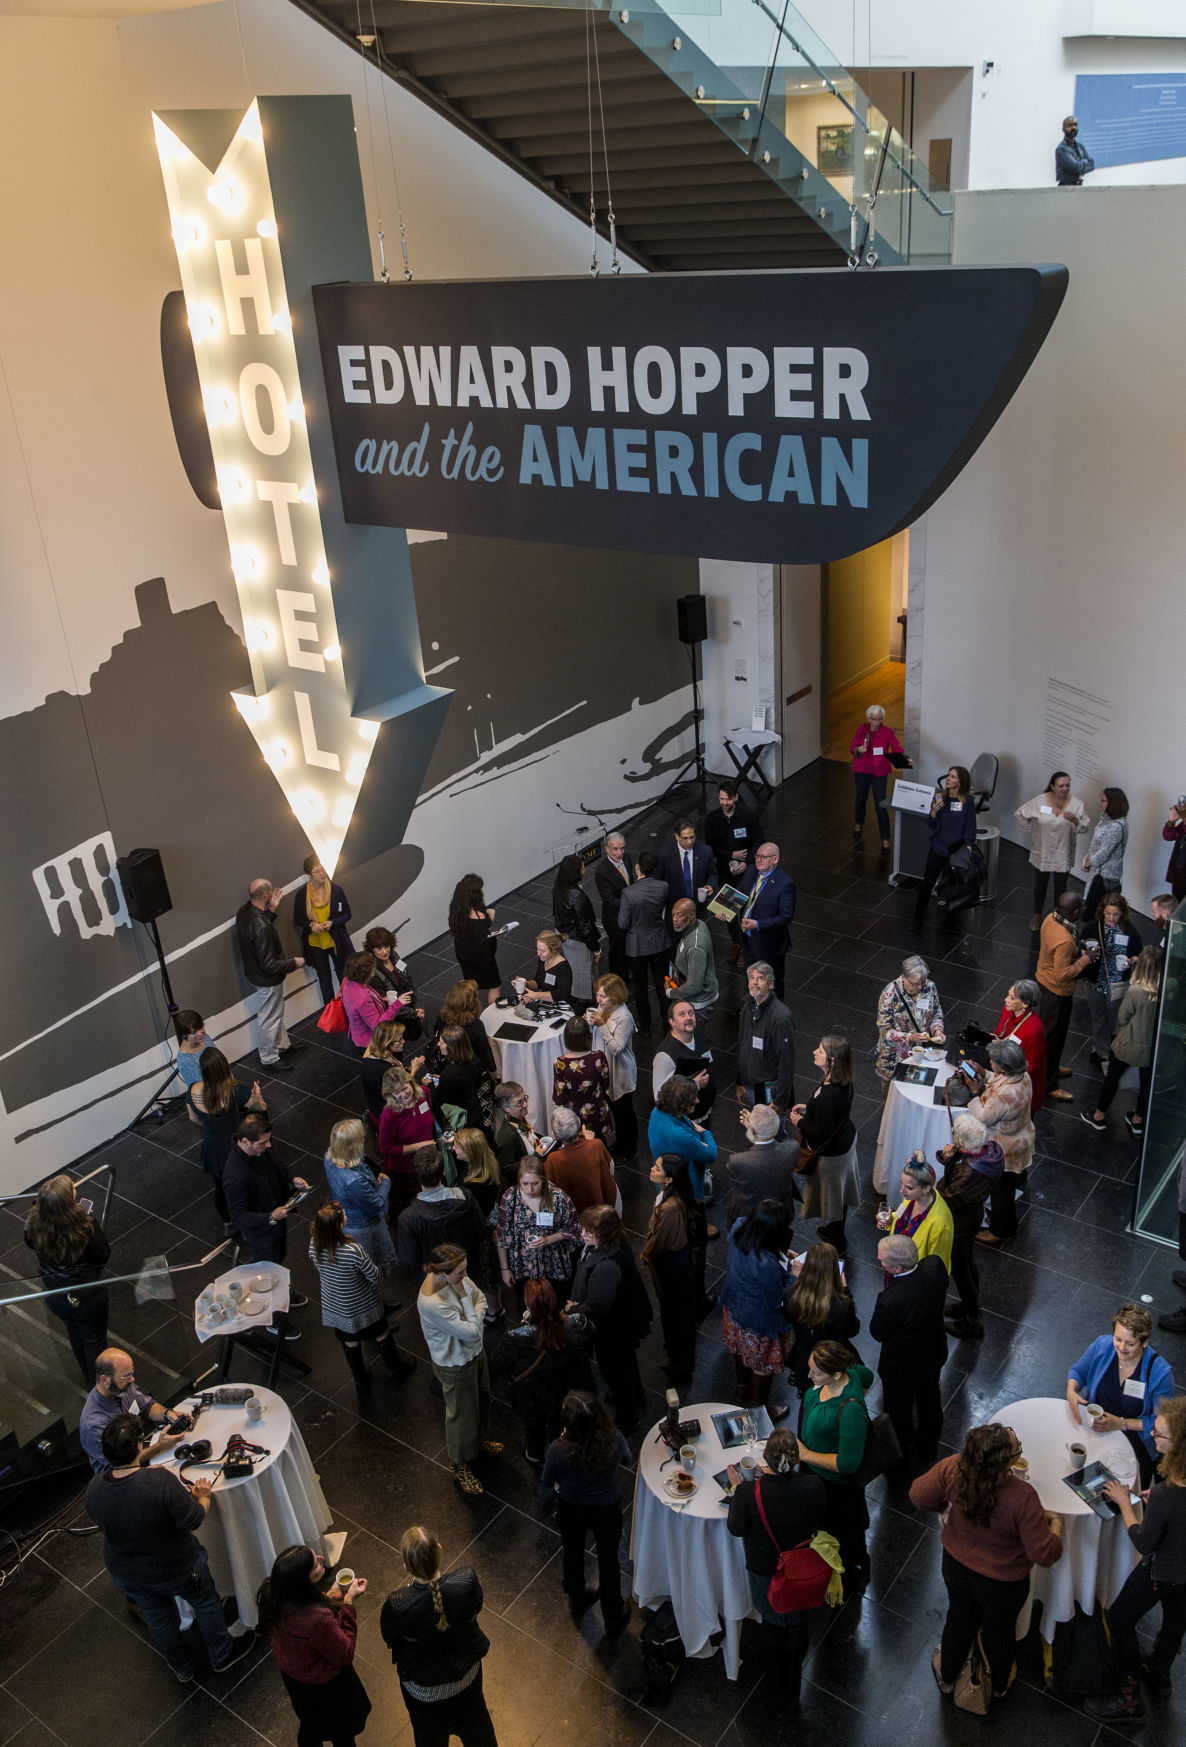 Edward Hopper and the American Hotel exhibit